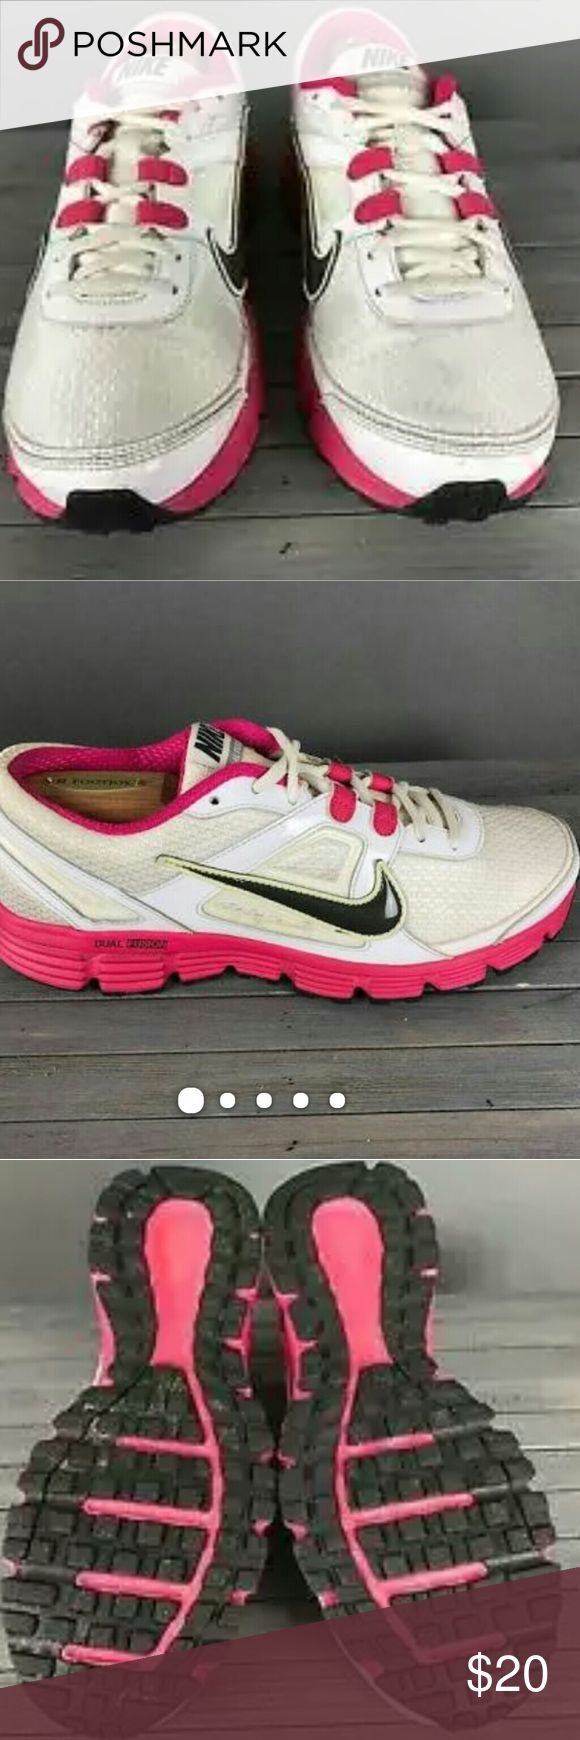 Nike Dual Fusion Tennis Shoes Womens Nike Dual Fusion ST White Pink Athletic Running Tennis Shoes 10 - Womens US Size 7- Very good pre-owned condition All Orders Ship Next Business Day!! Nike Shoes Sneakers